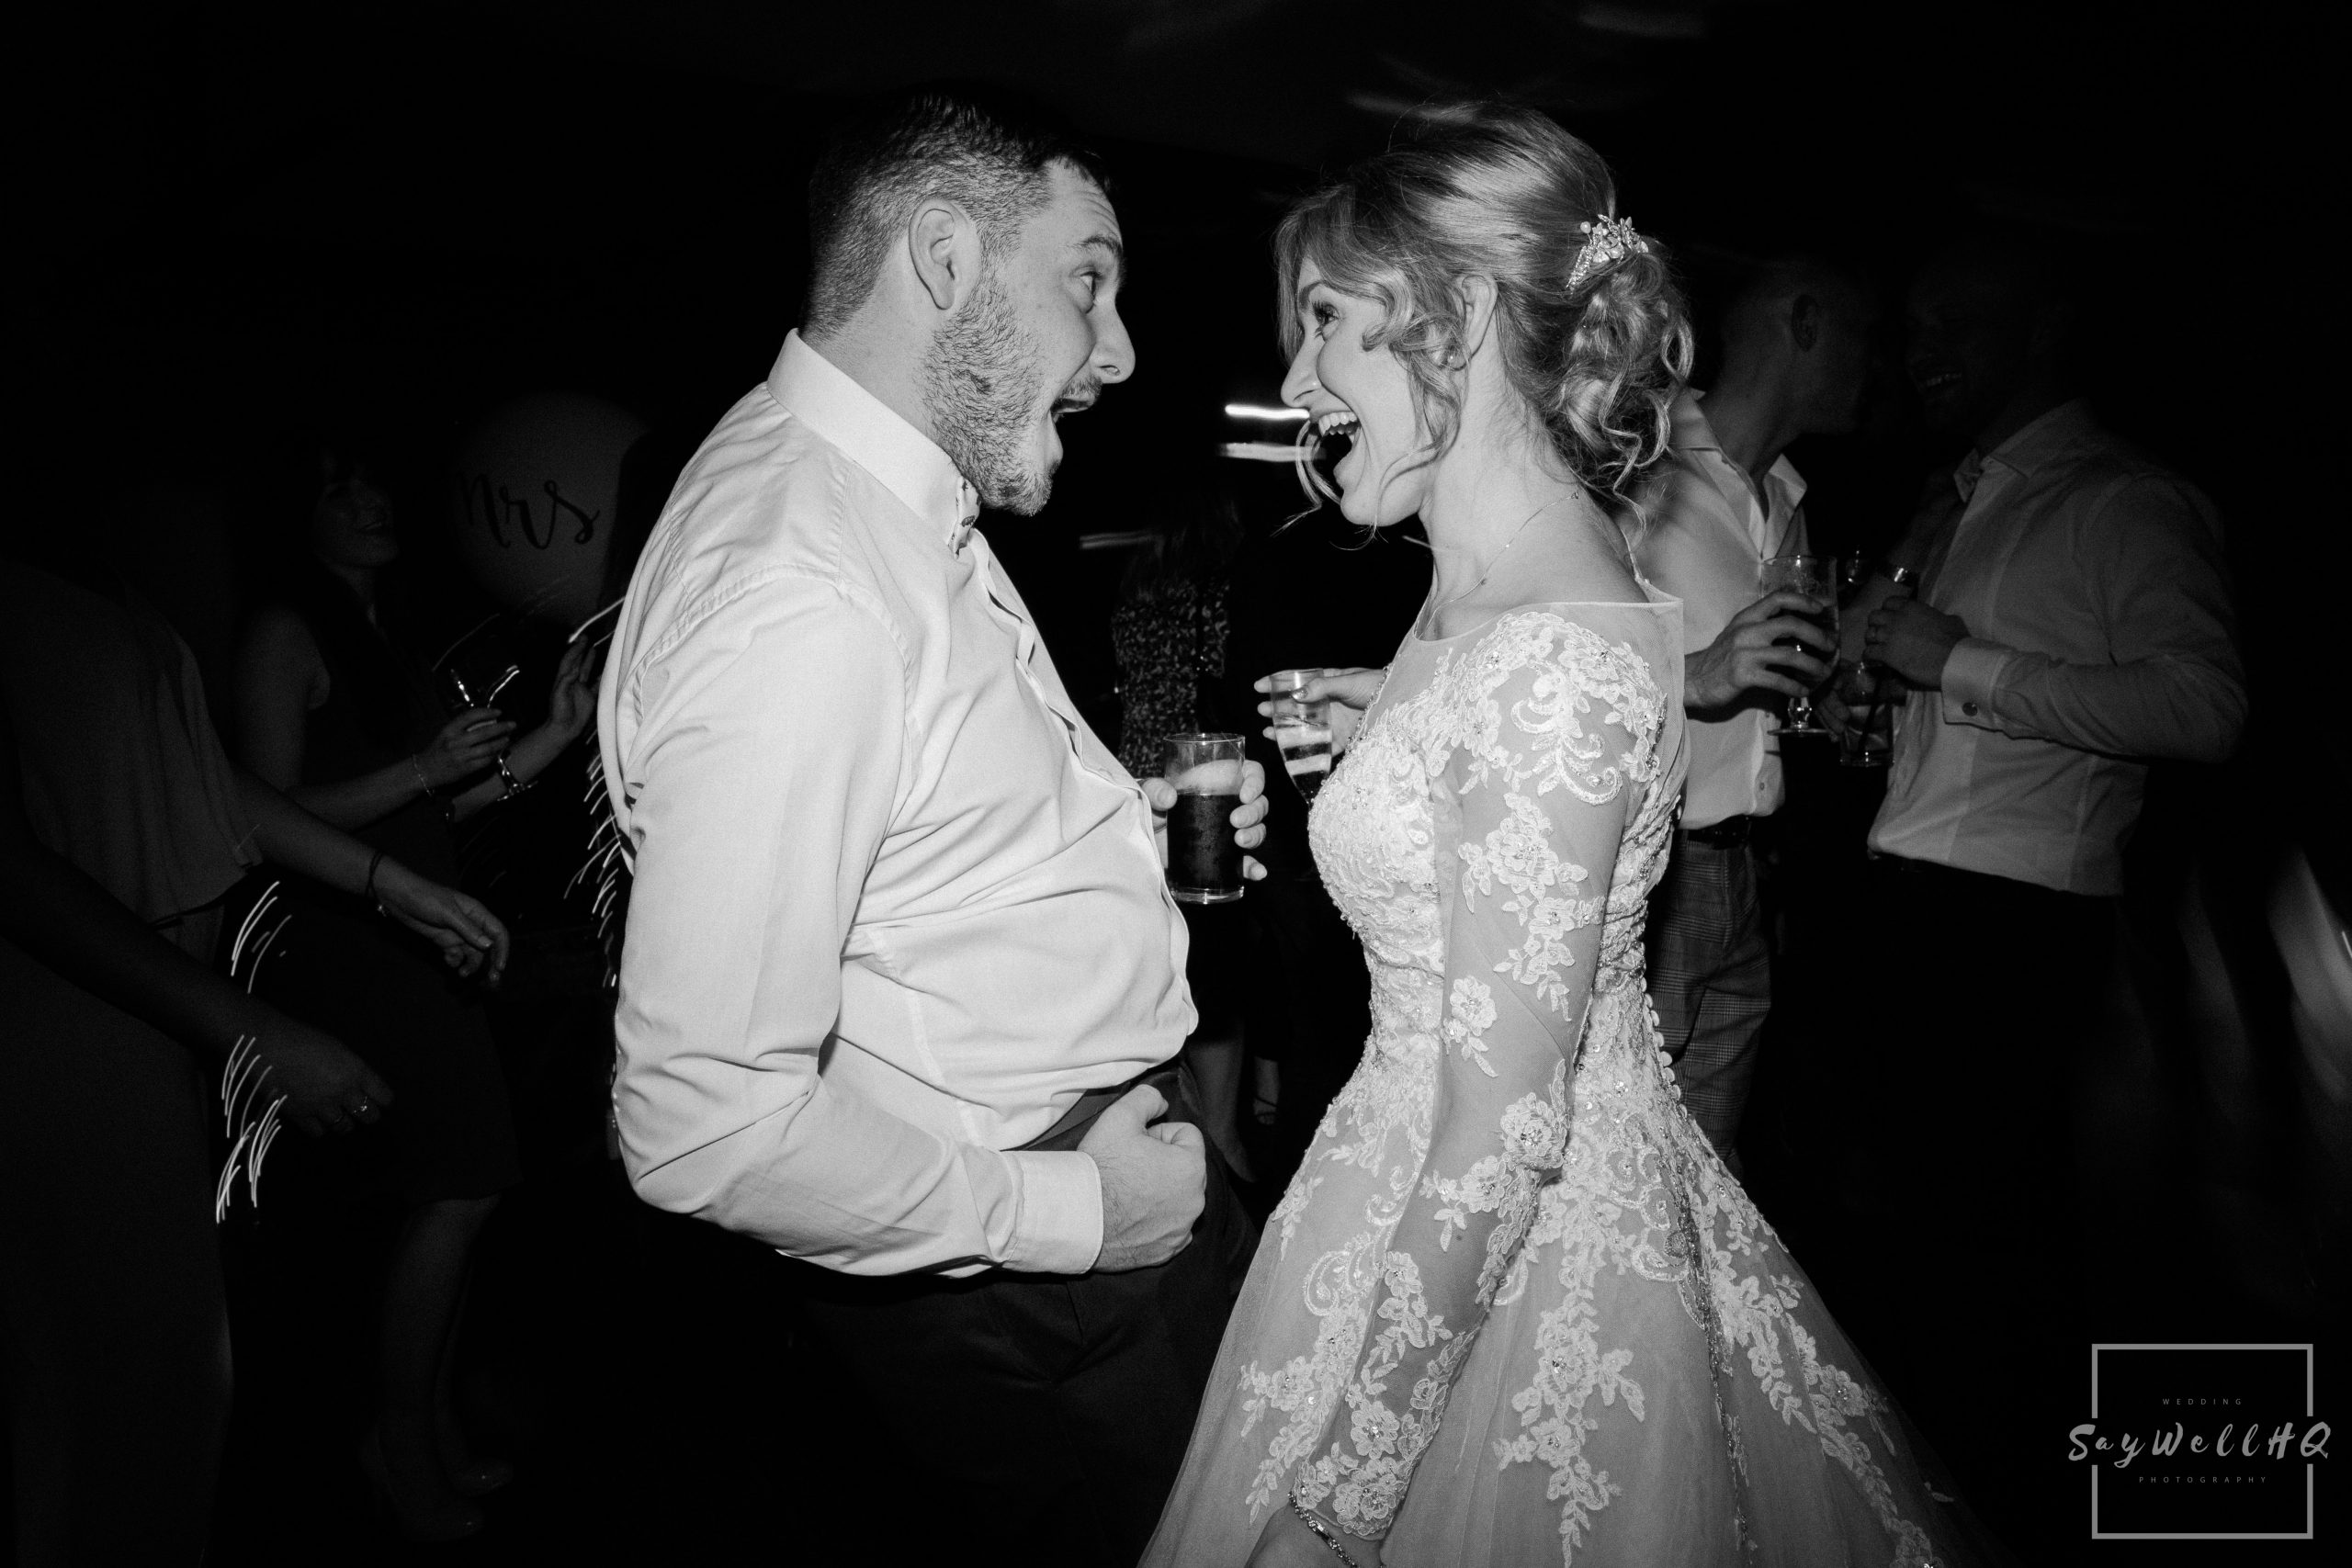 Bride and a wedding guest having fun on the dancefloor during the disco at a Goosedale wedding - Wedding Photography by goosedale wedding photographer Andy Saywell of SaywellHQ